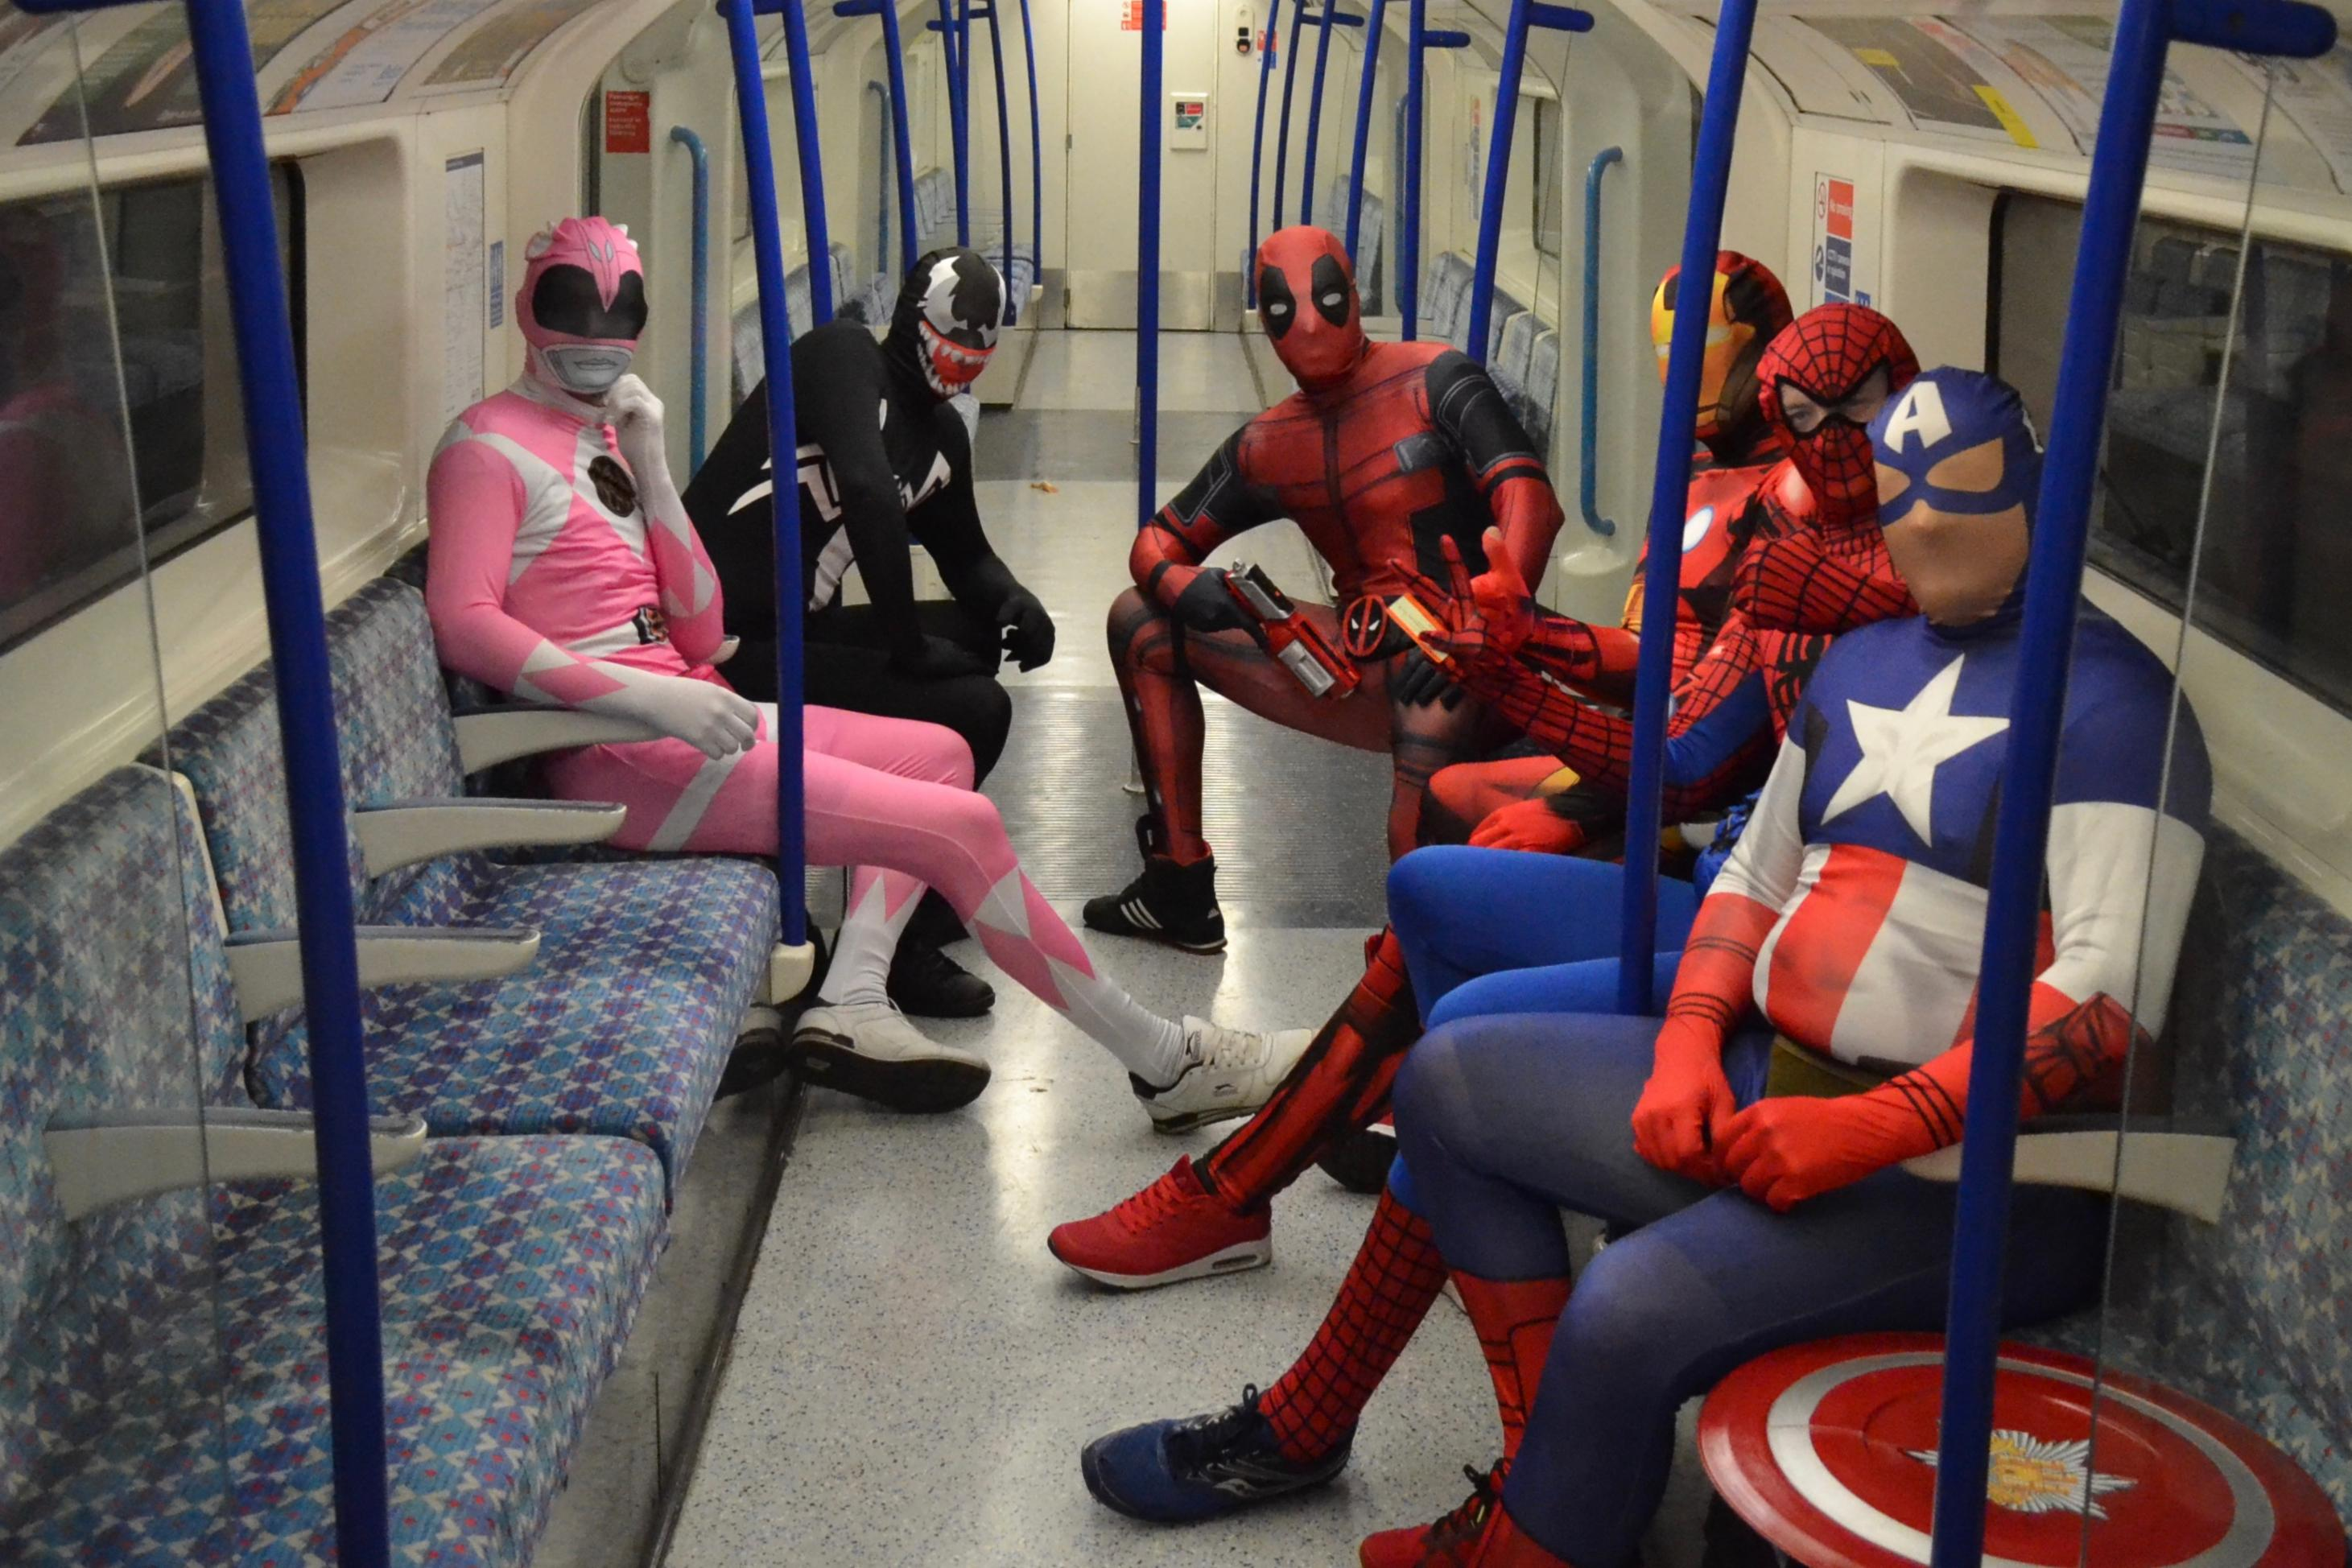 Superheroes on the London Underground